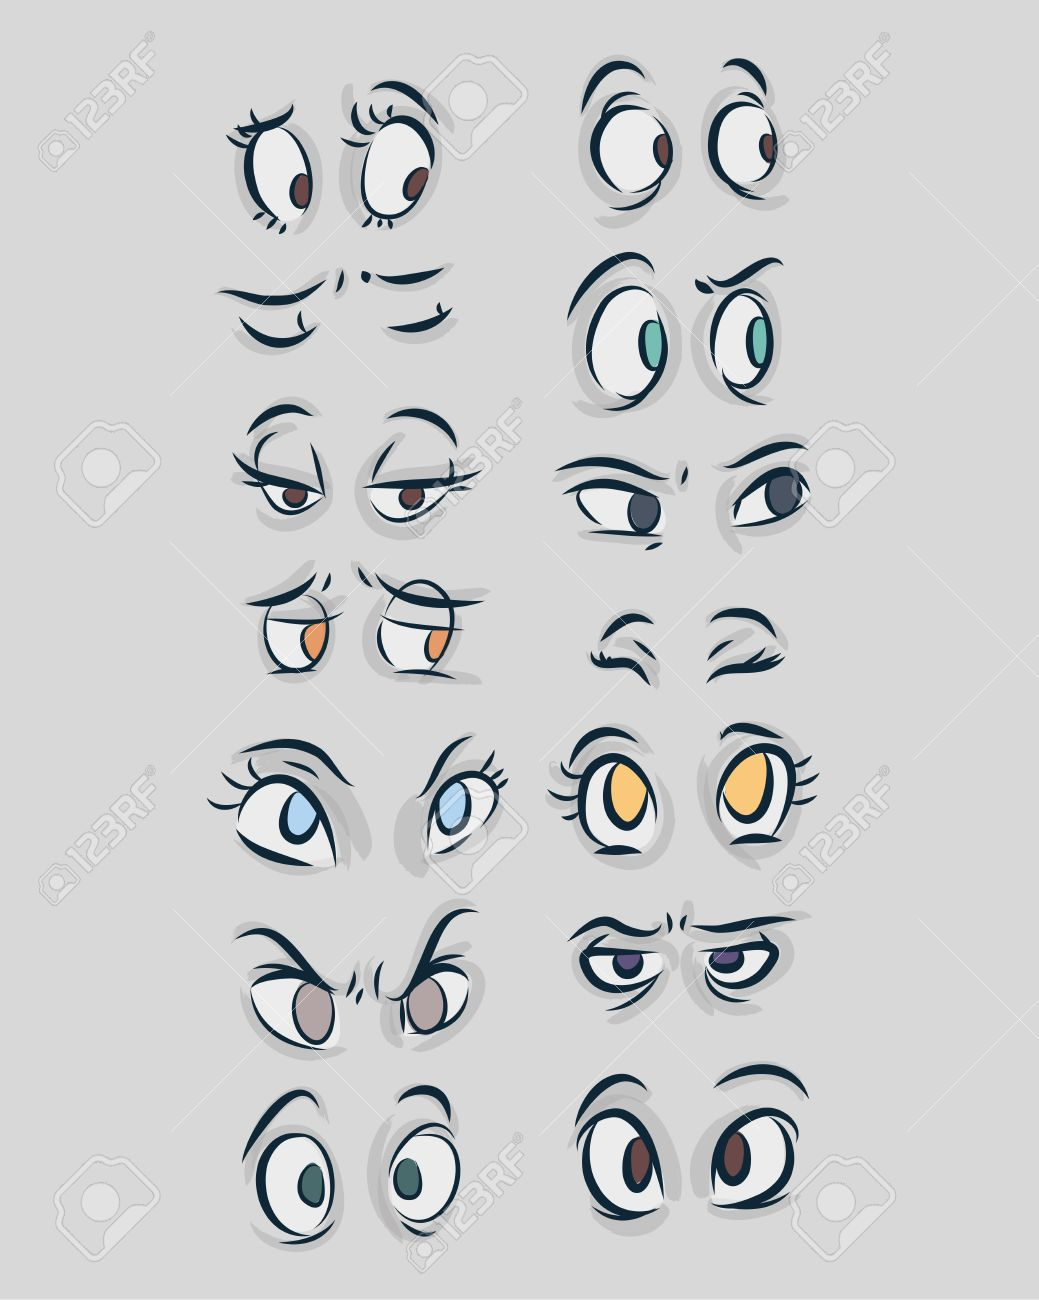 Hand Drawn Vector Illustration Or Drawing Of Different Types Royalty Free Cliparts Vectors And Stock Illustration Image 35828908